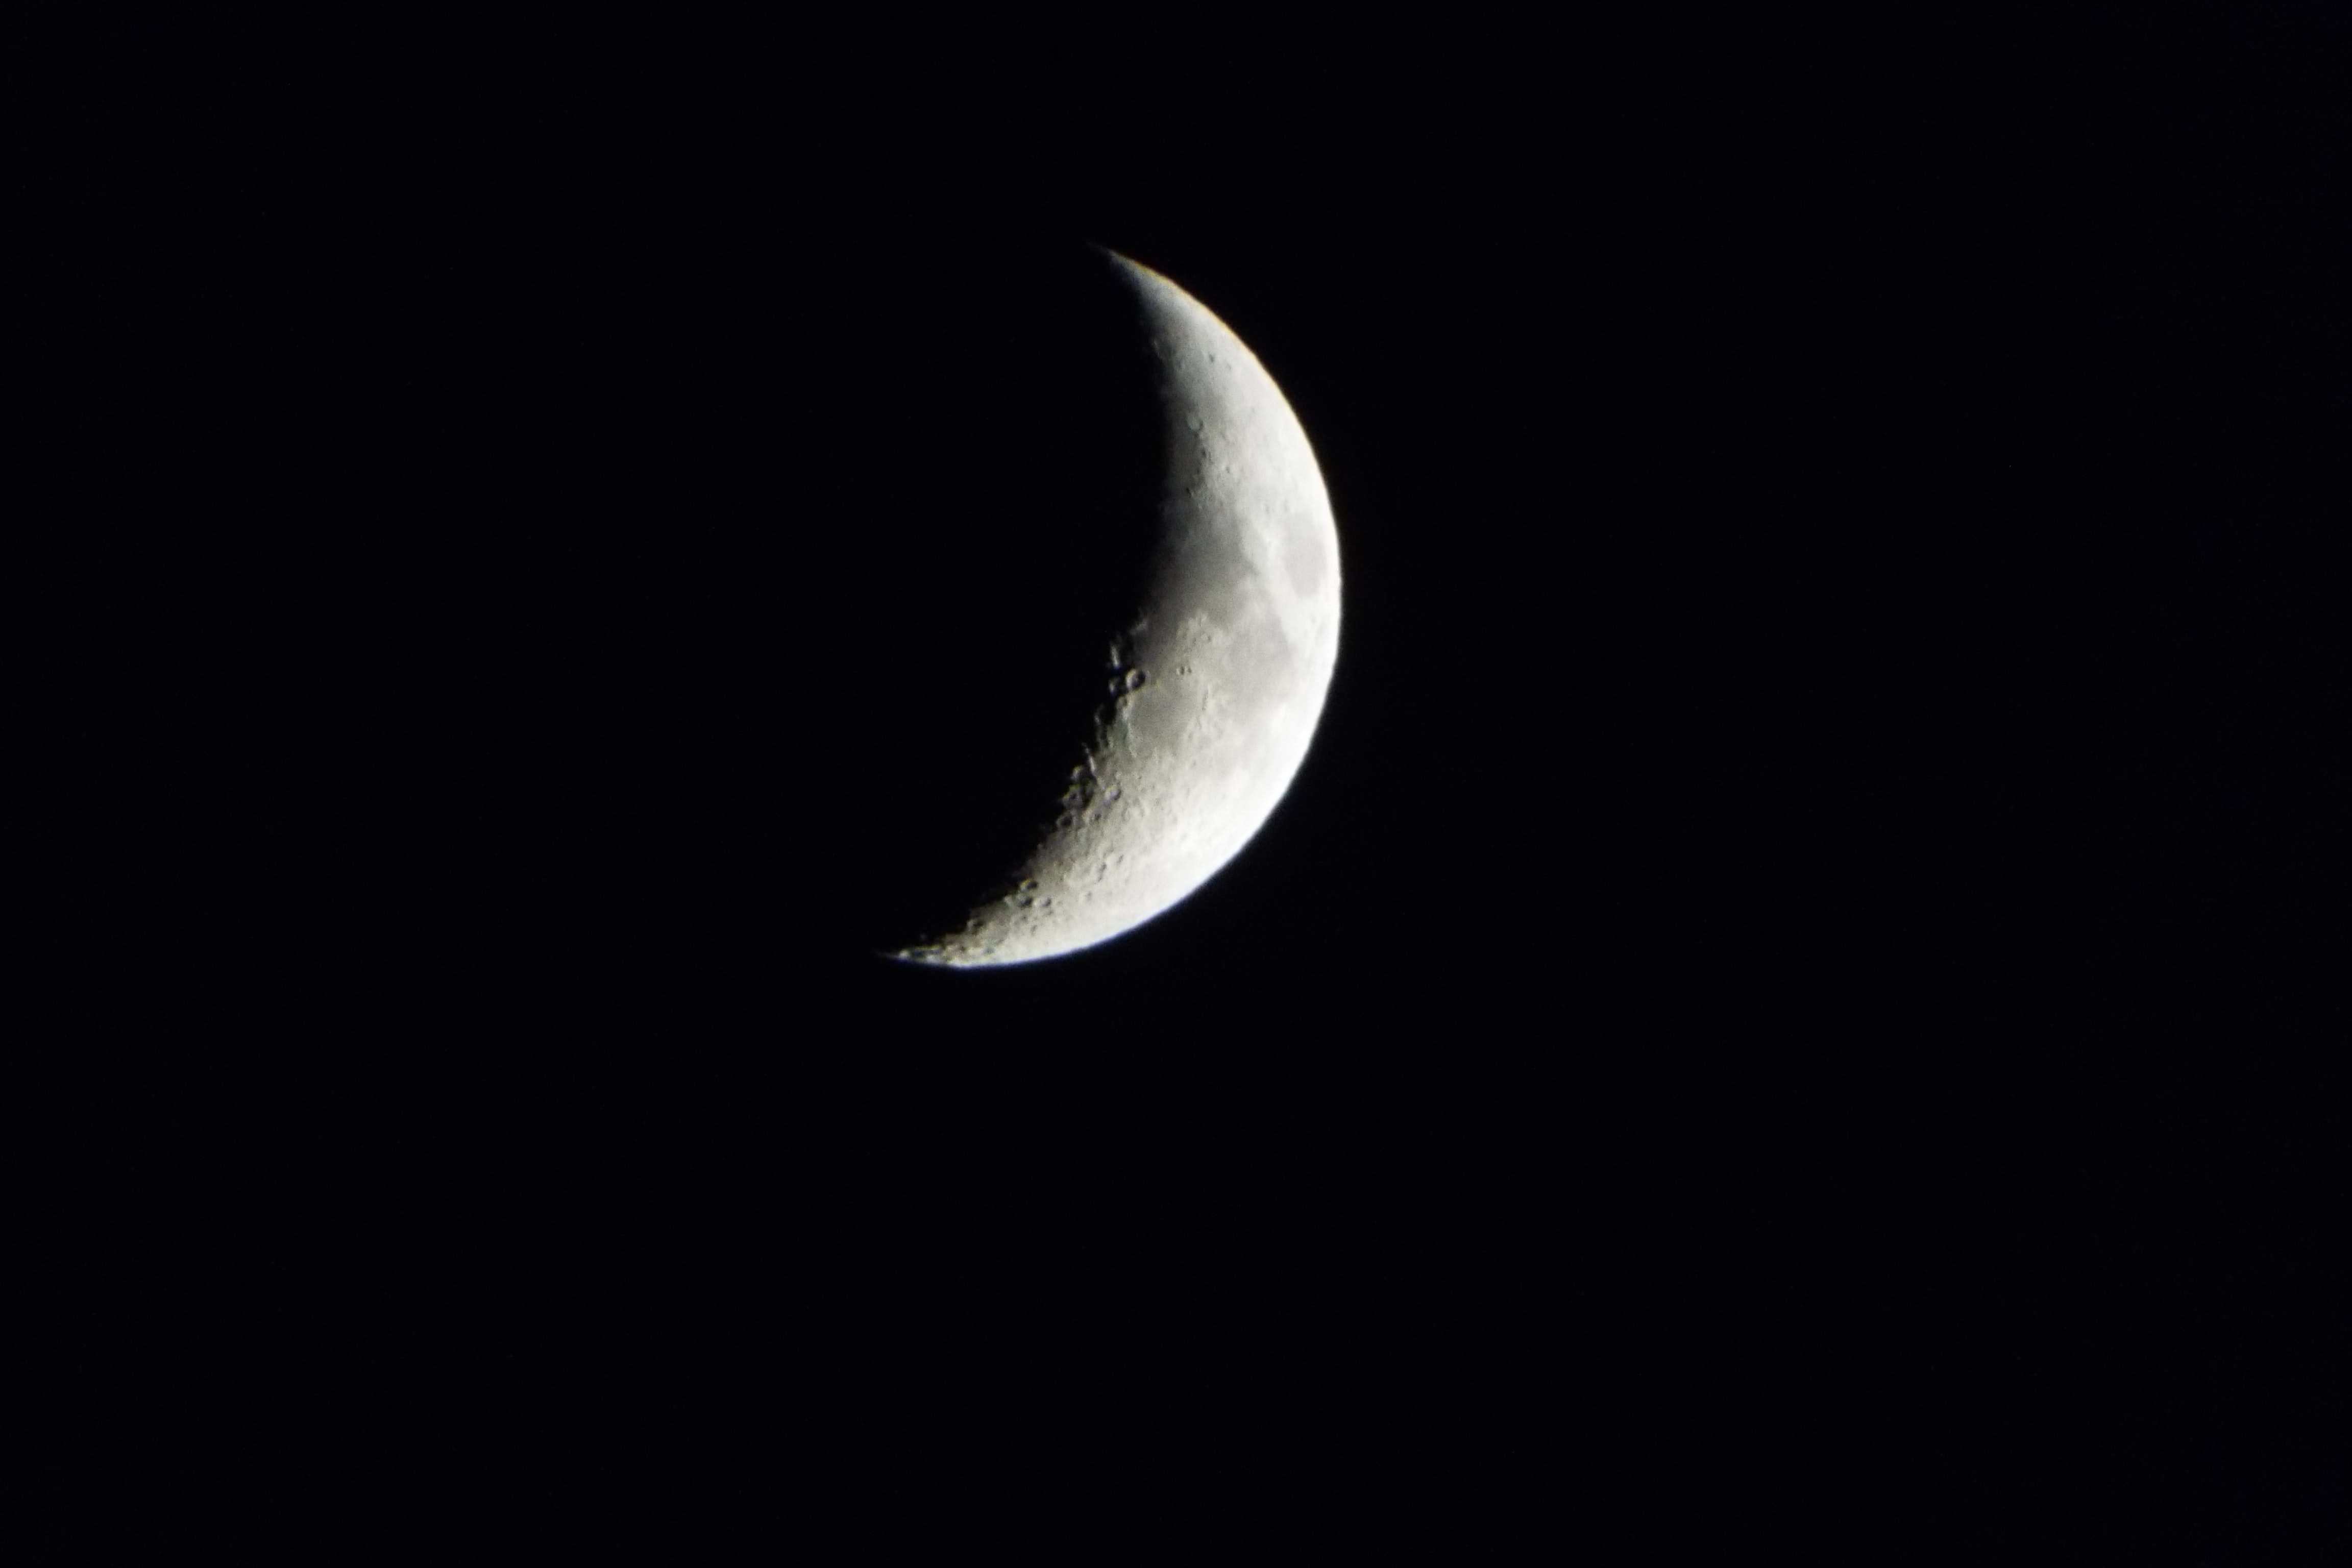 The moon appearing as a crescent during the eclipse at Rainham